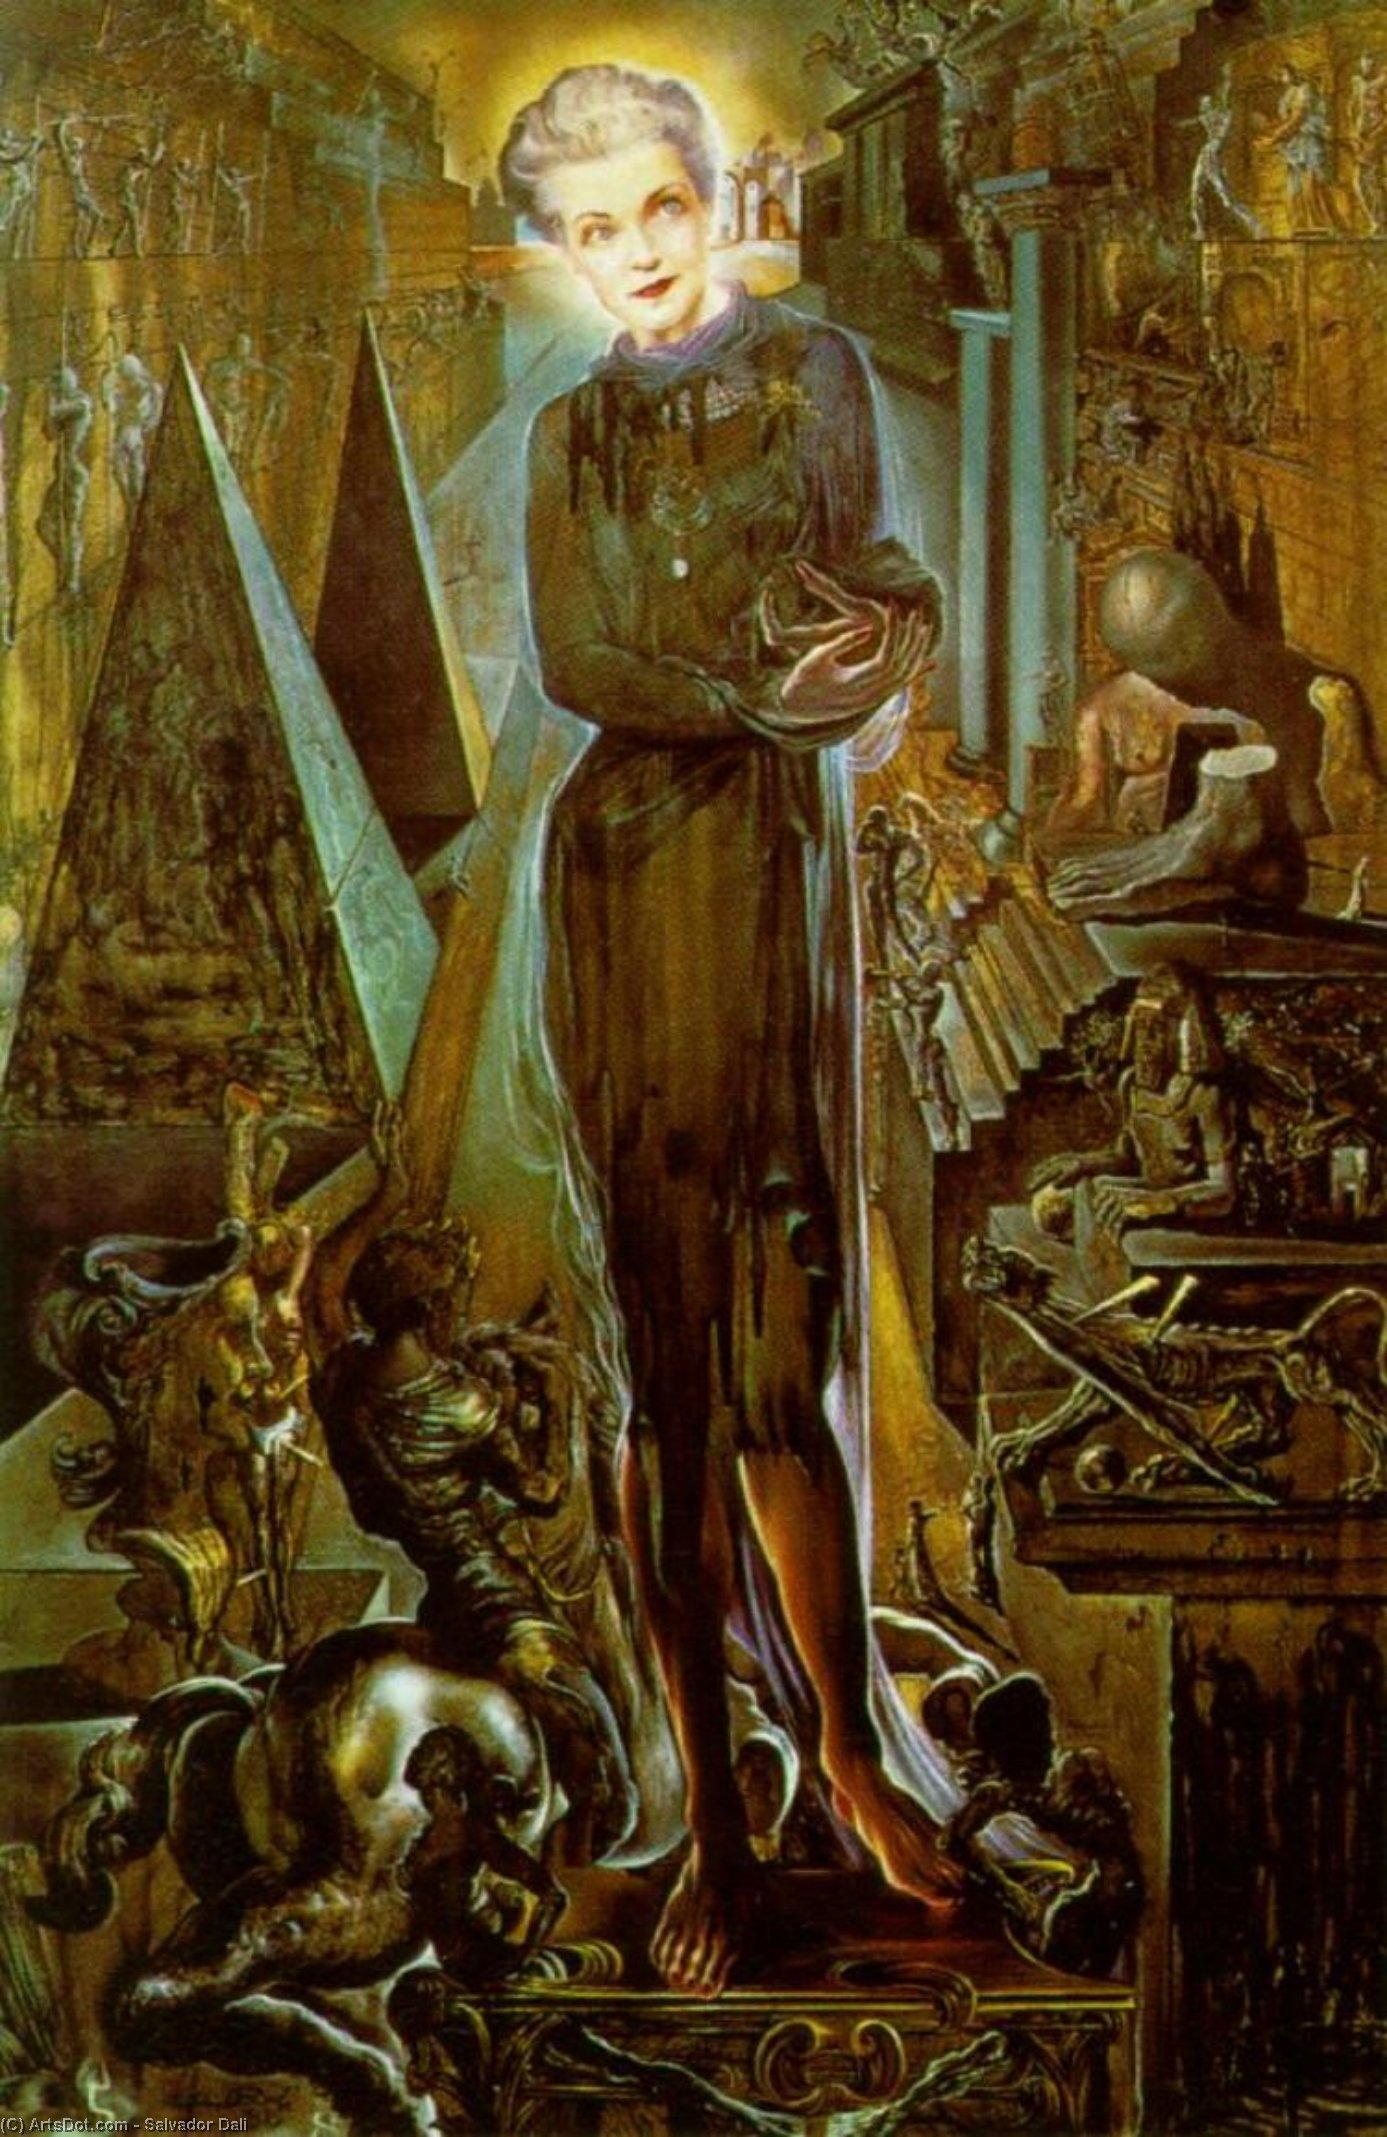 a biography of salvador dali born in figures in spain Salvador dali in ubuweb sound a biography of the surrealist artist, salvador dali dali was born in 1904 in figures, spain.